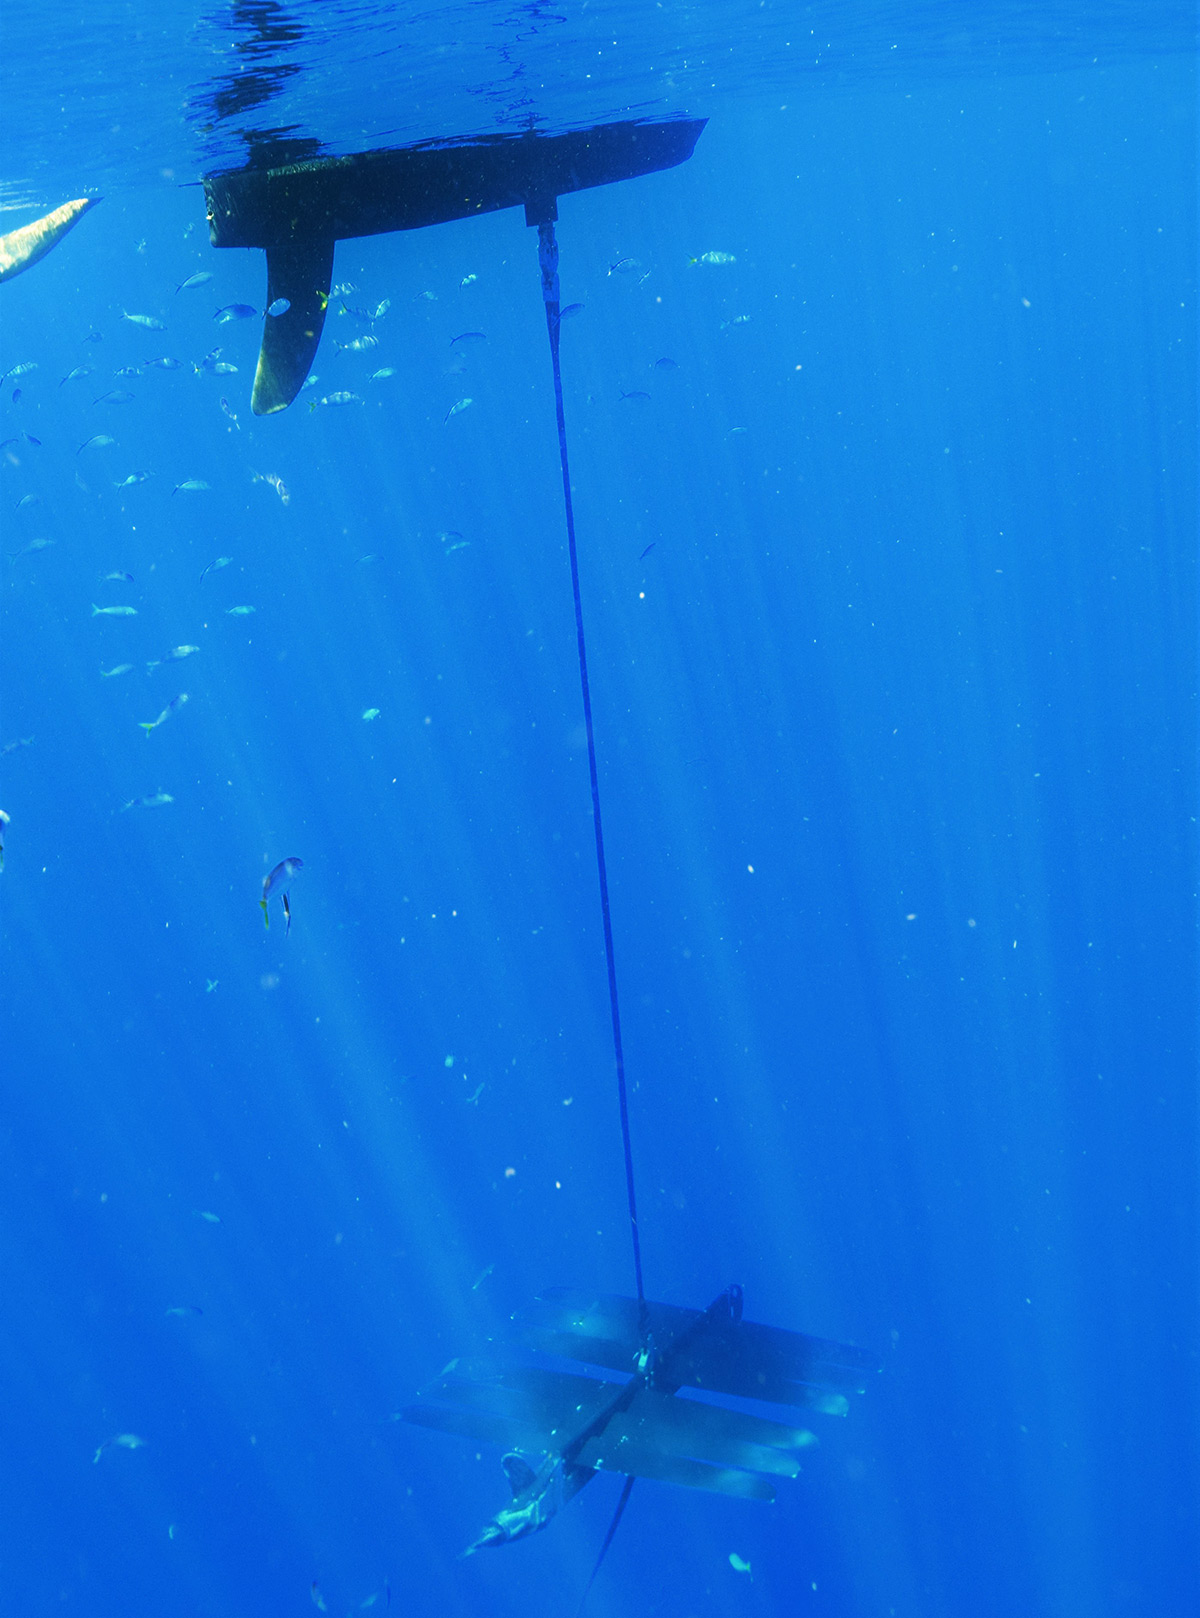 The wave-powered drone